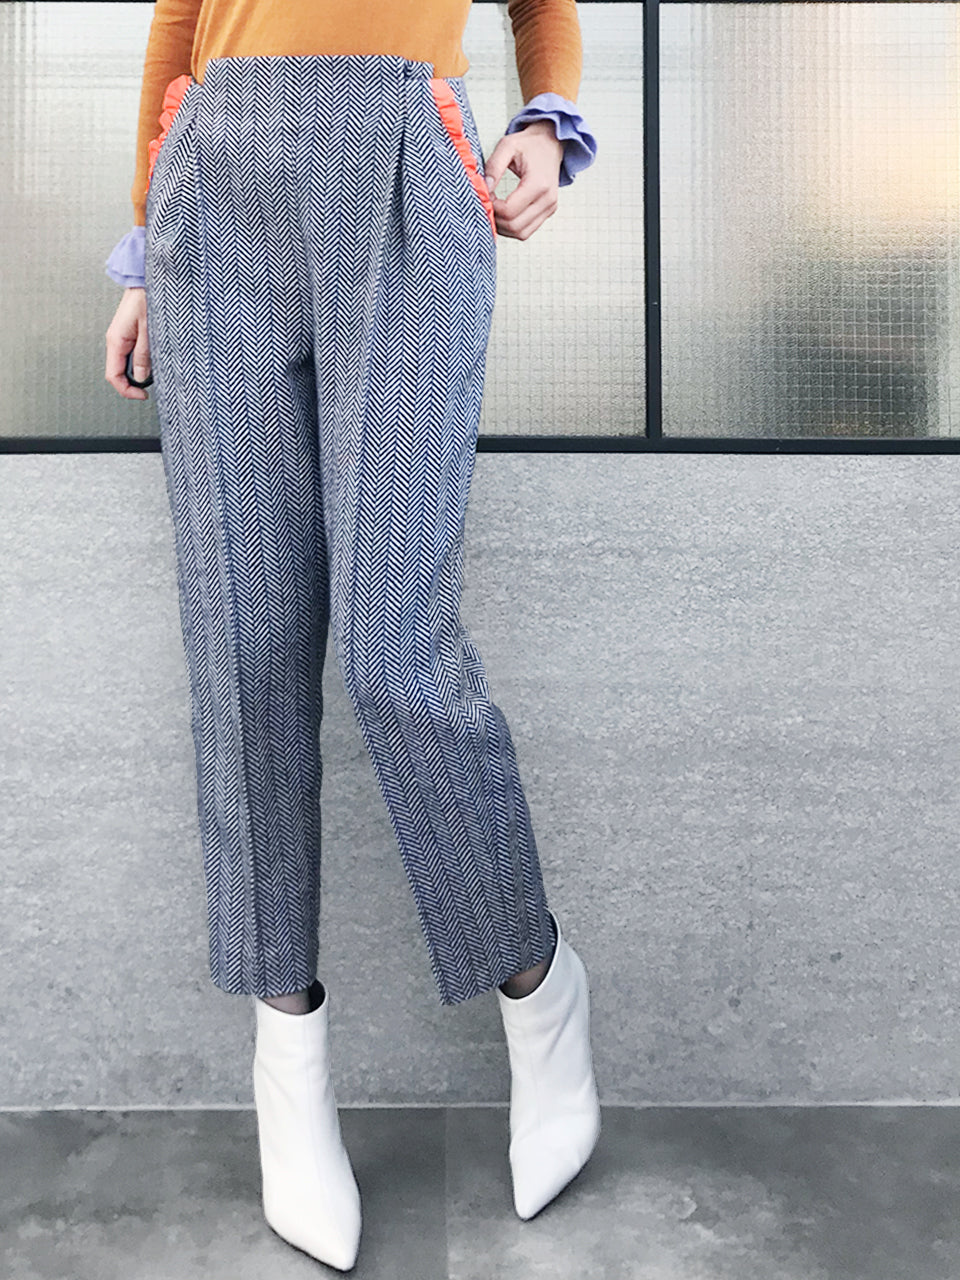 Further Sale! Navy Zigzag Stripes Ruffle Wool Blend Pants